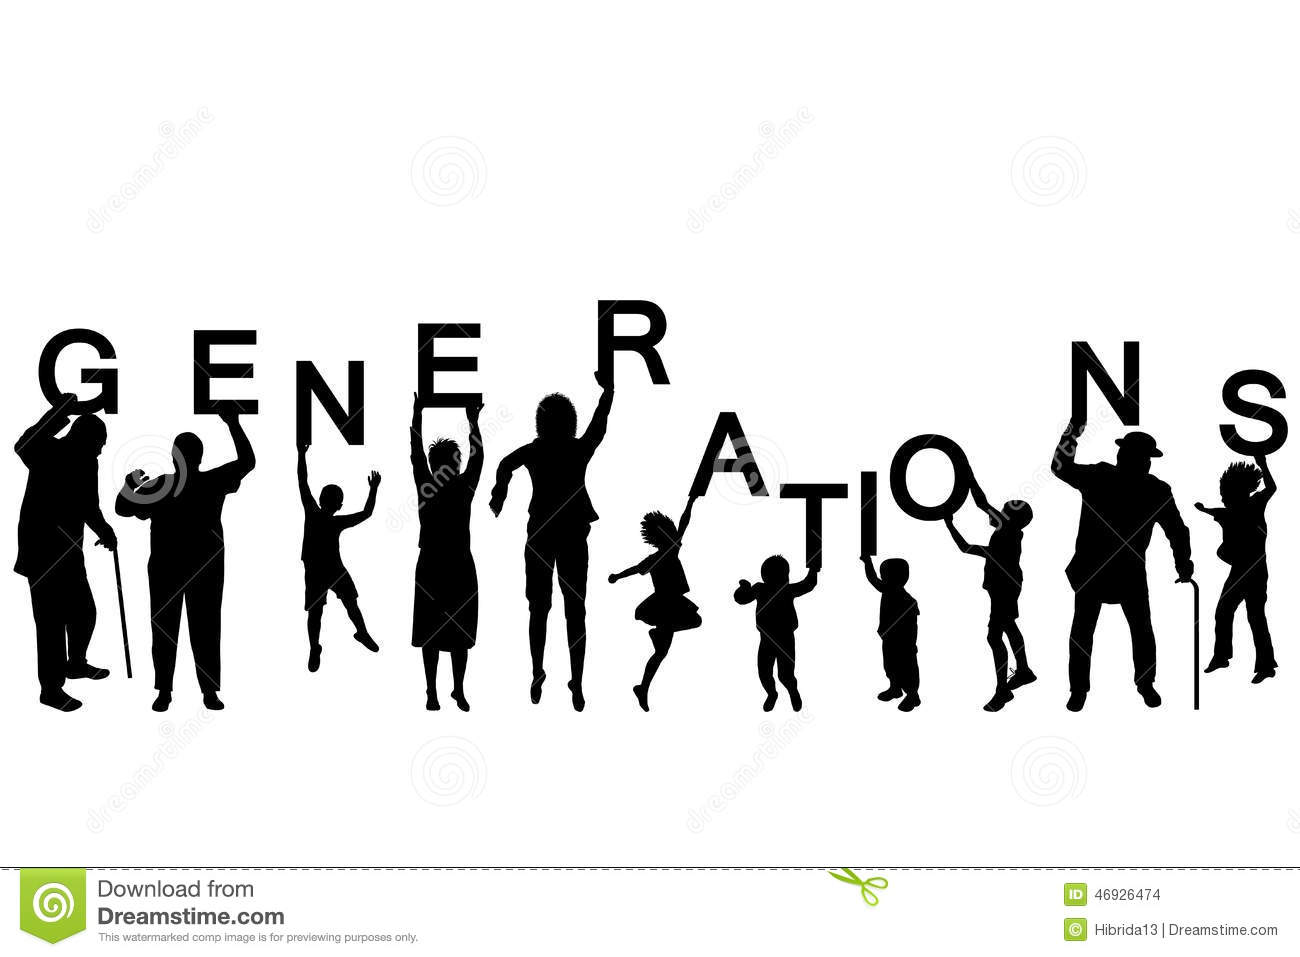 How is your generation different from your parents`generation?